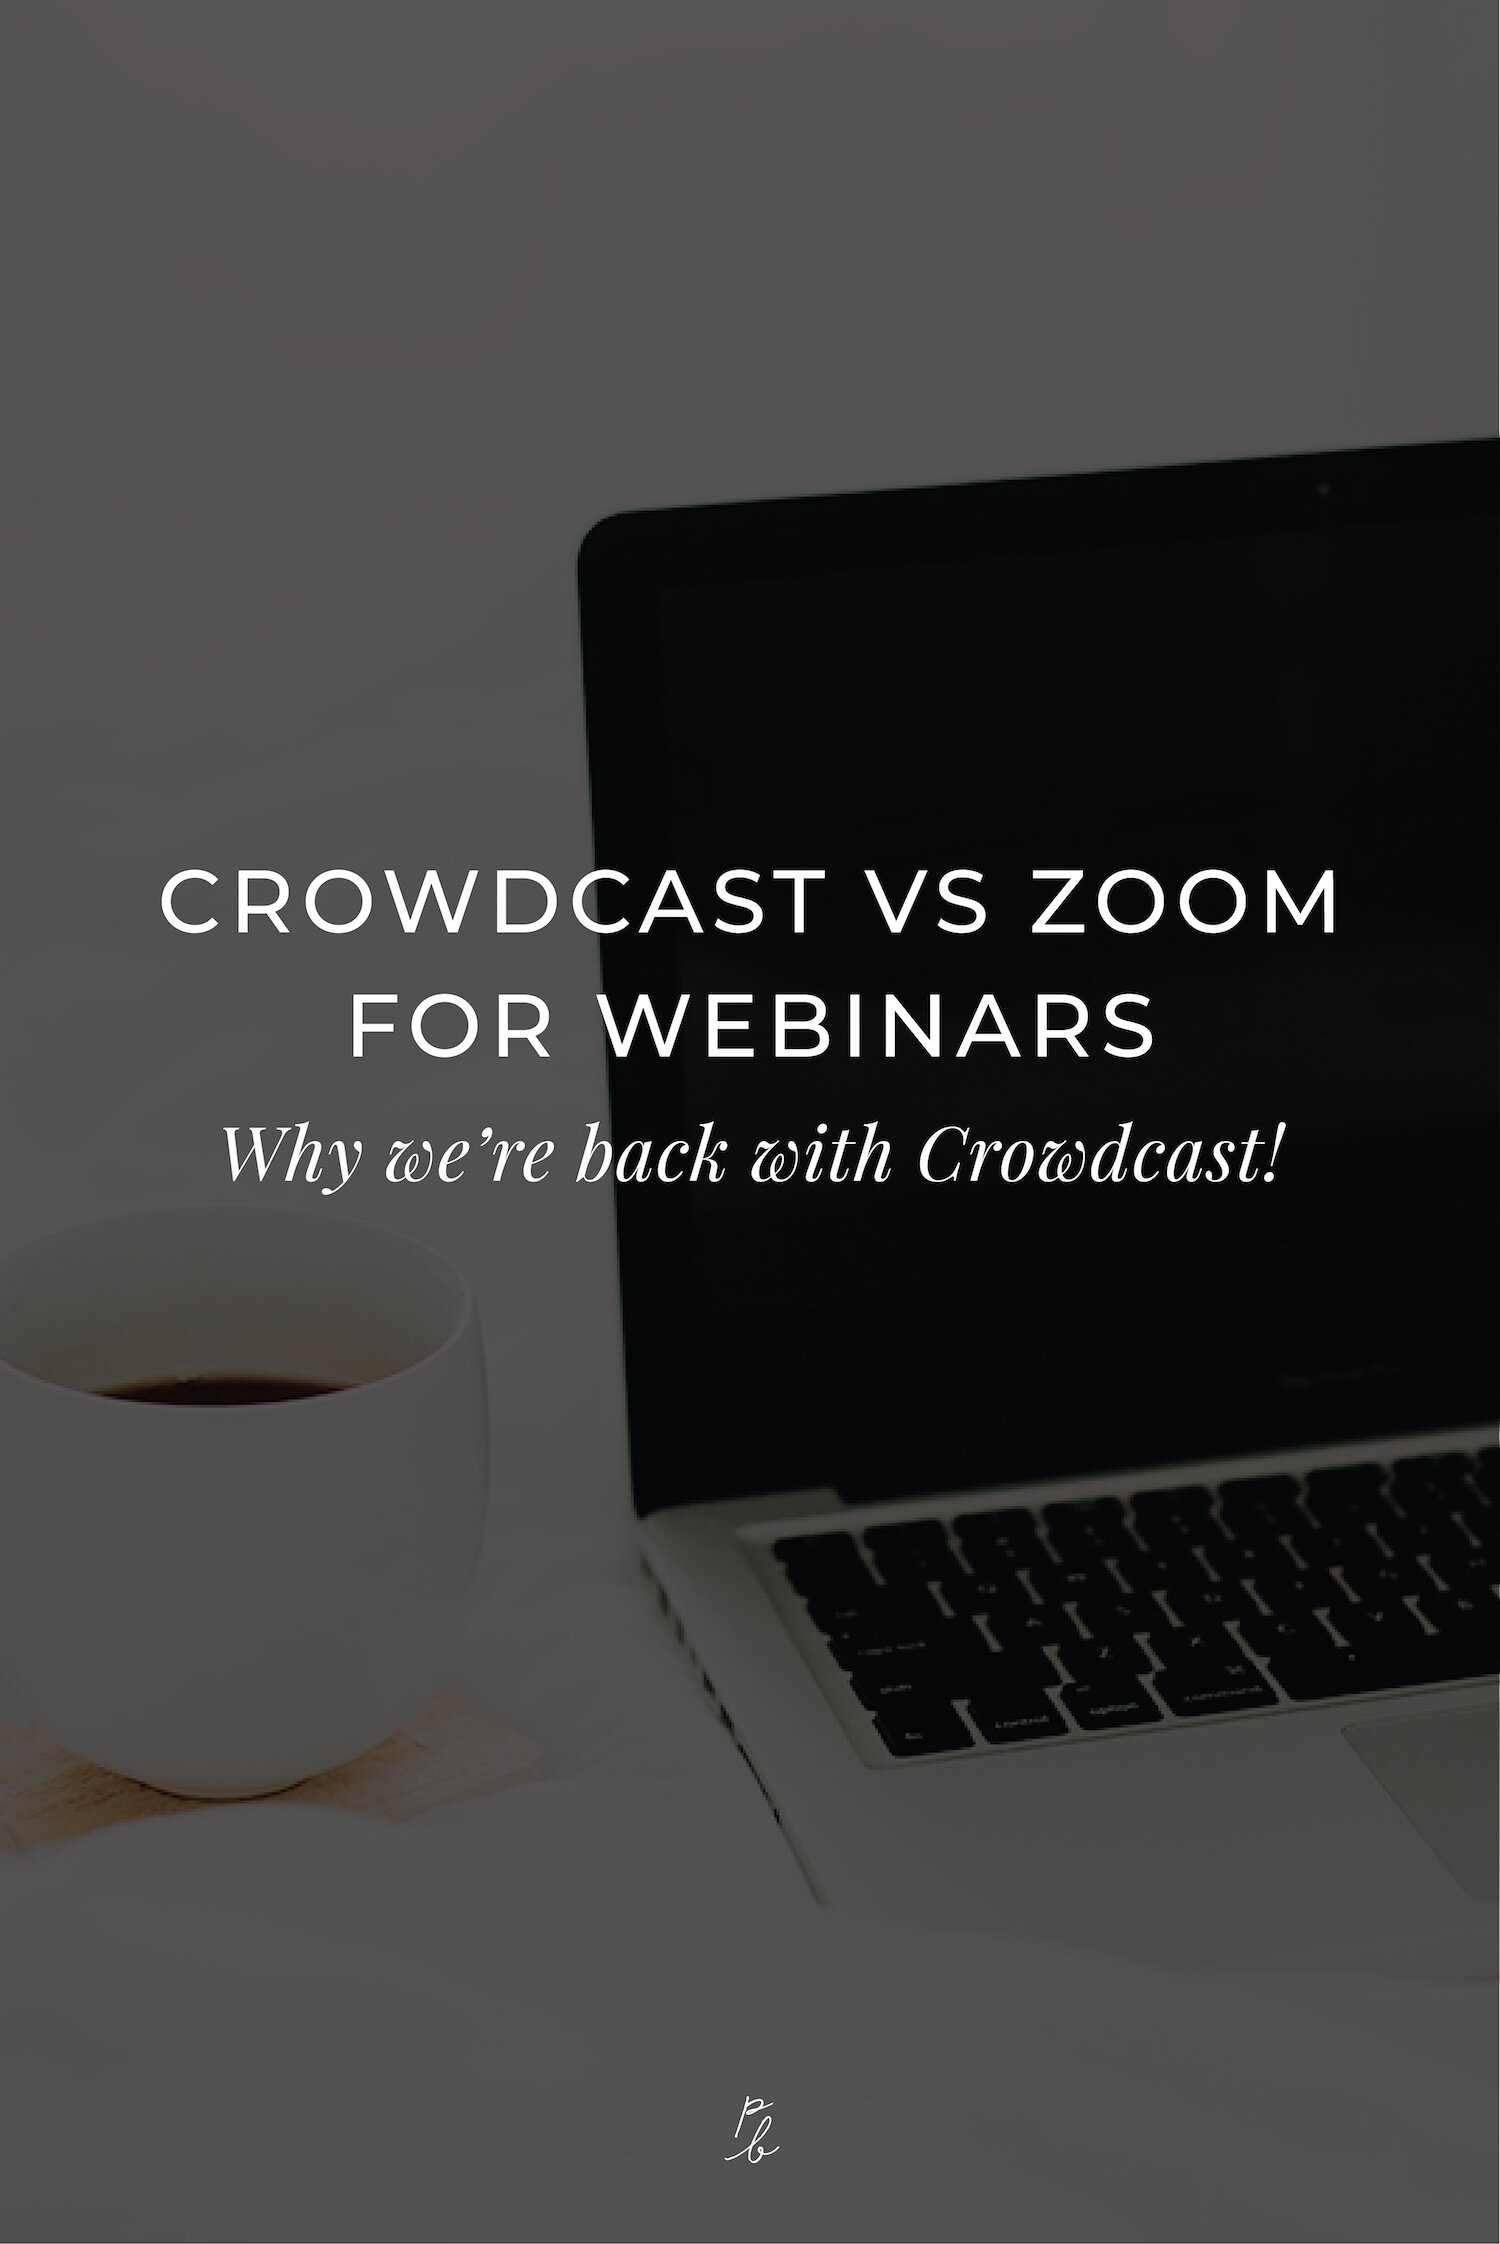 Crowdcast vs Zoom for webinars. Why we're back with Crowdcast!.jpeg